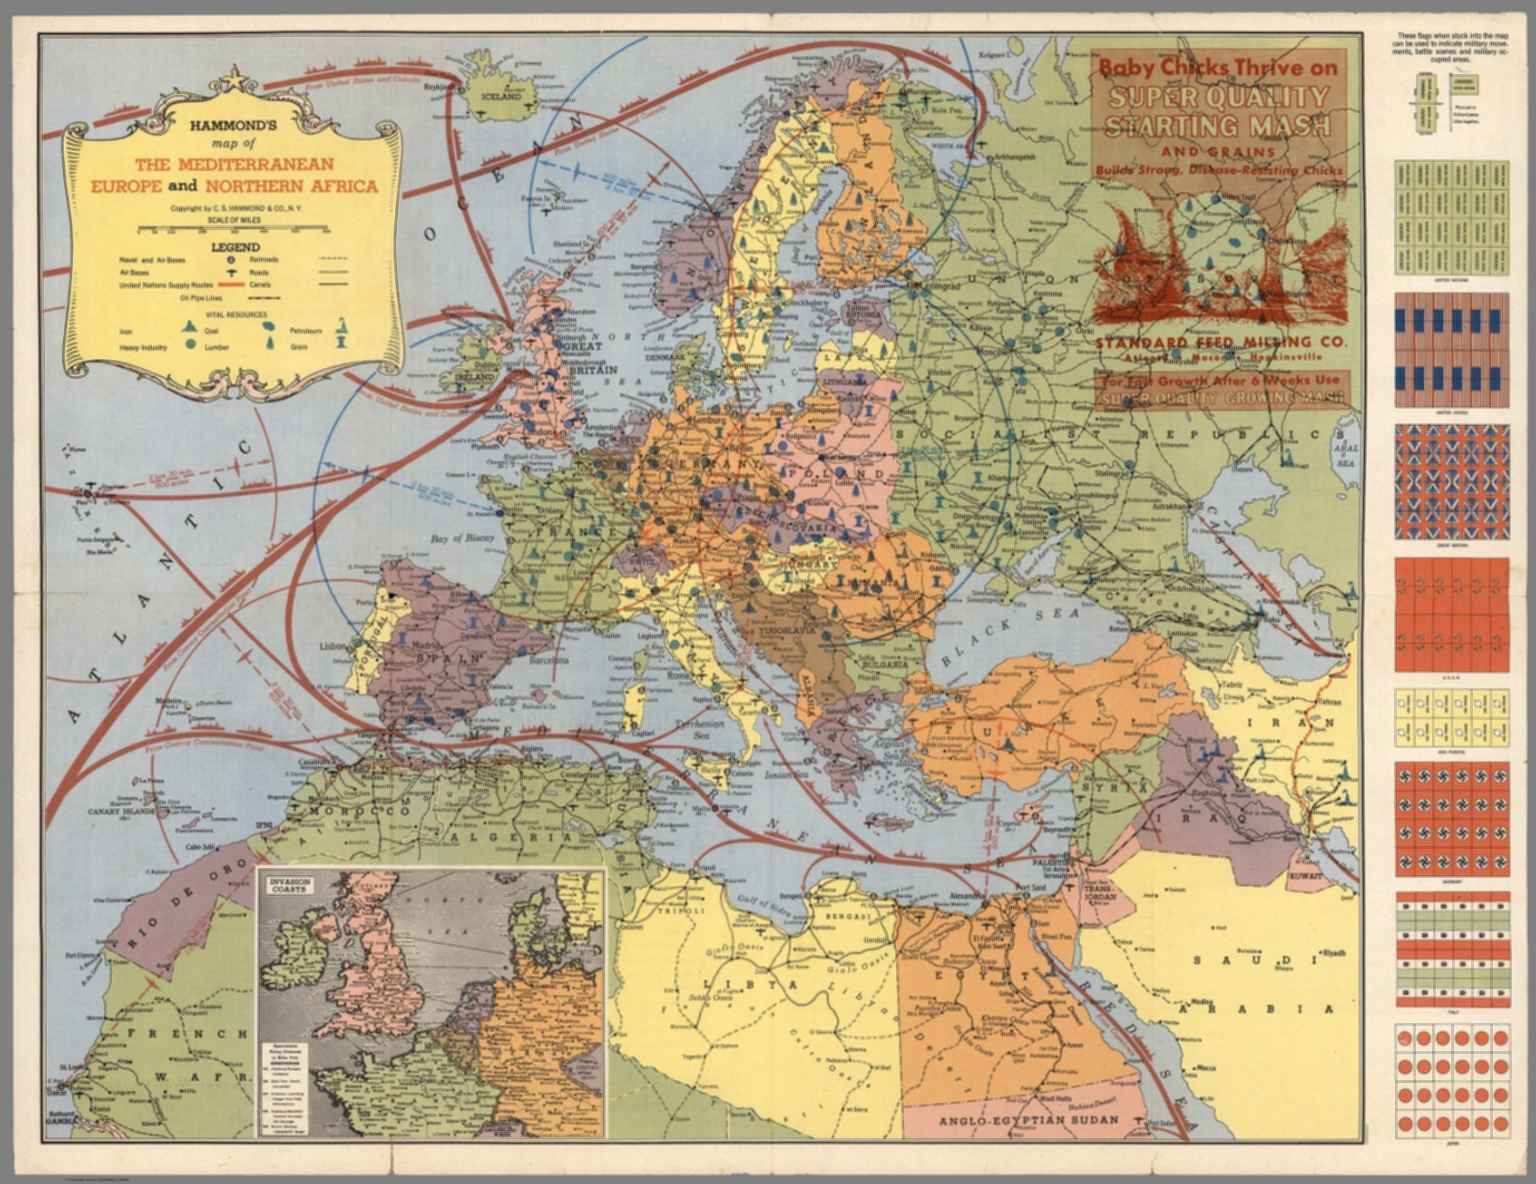 Hammonds Map of The Mediterranean Europe and Northern Africa